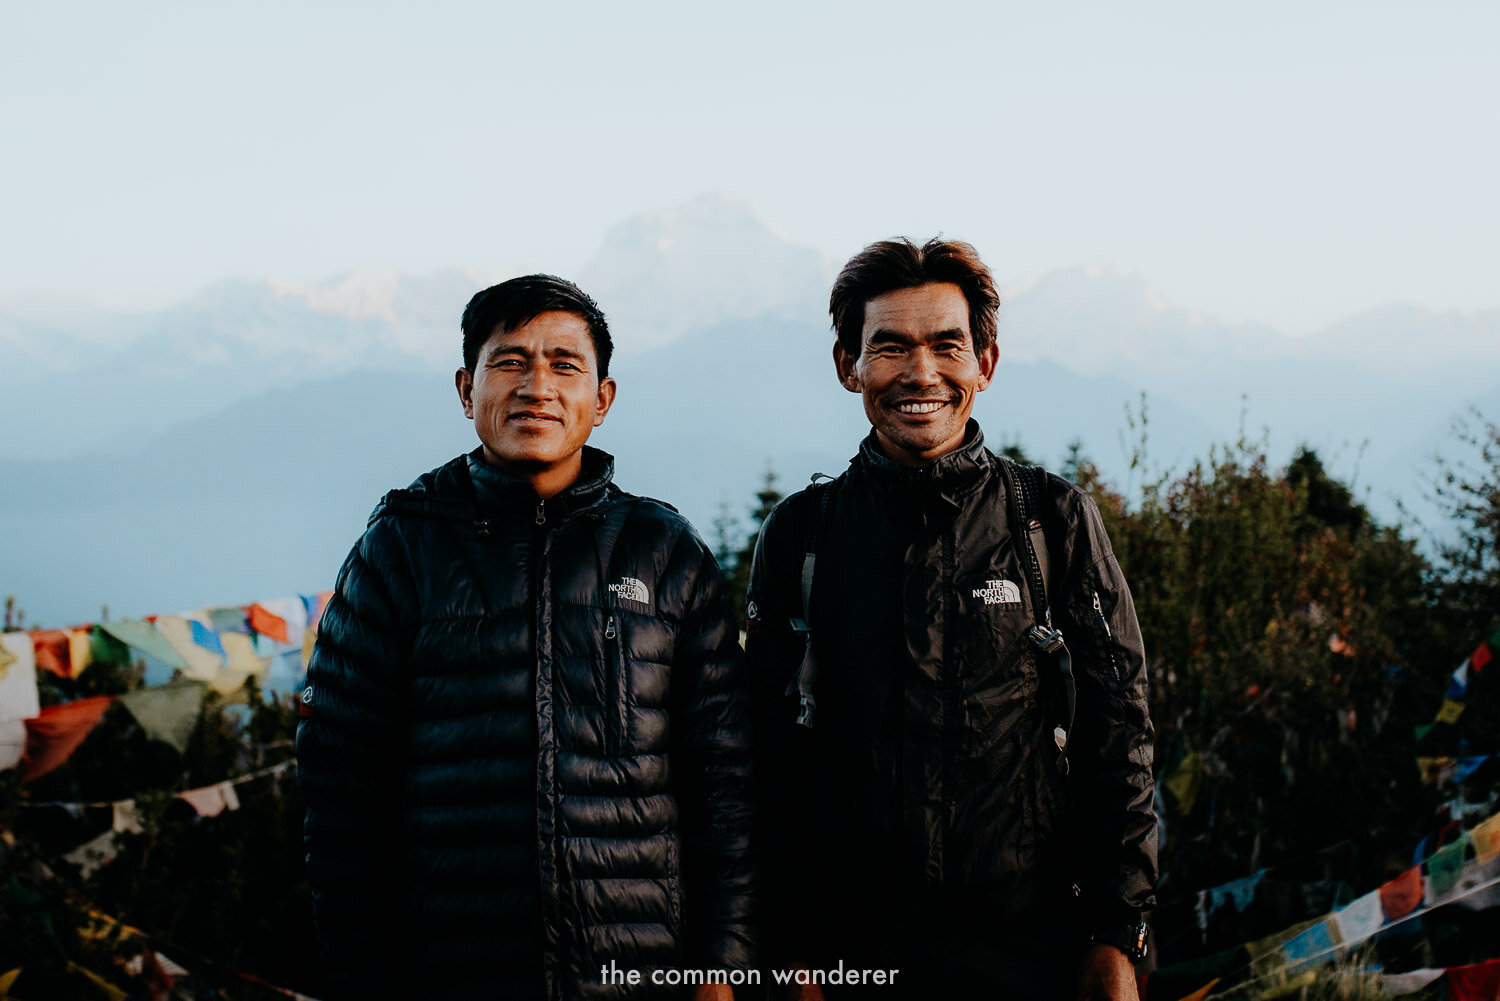 Hiring guides and porters is essential to improve responsible tourism in Nepal